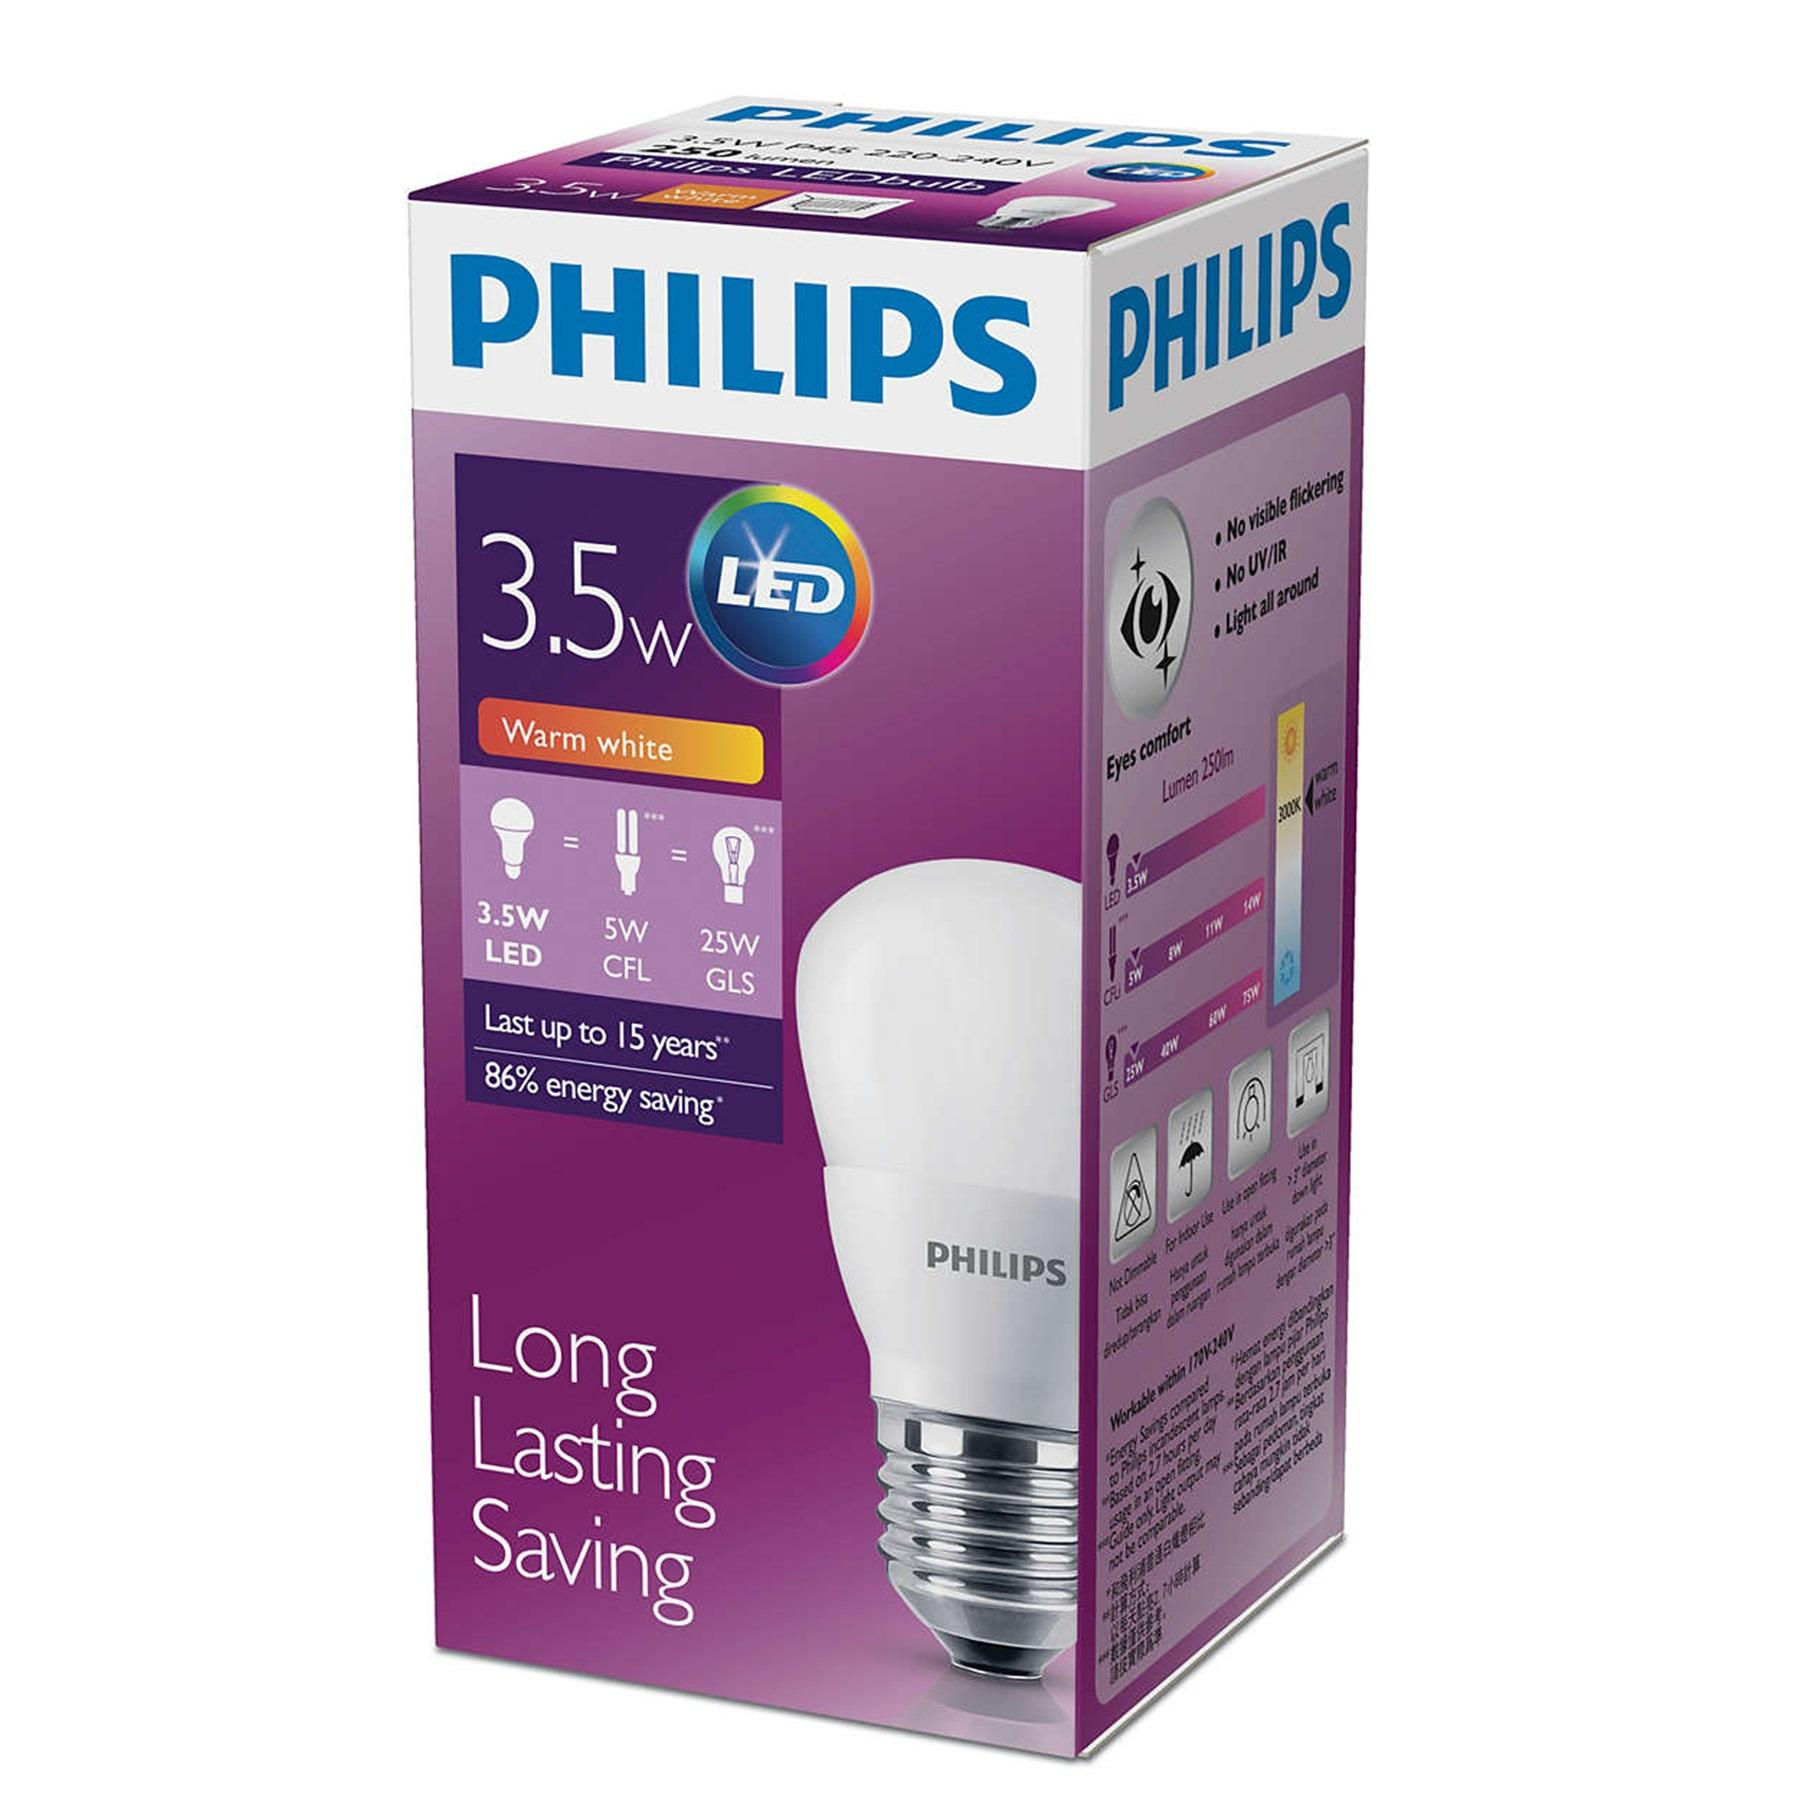 PHILIPS Bola lampu LED 3,5 Watt - Warm White